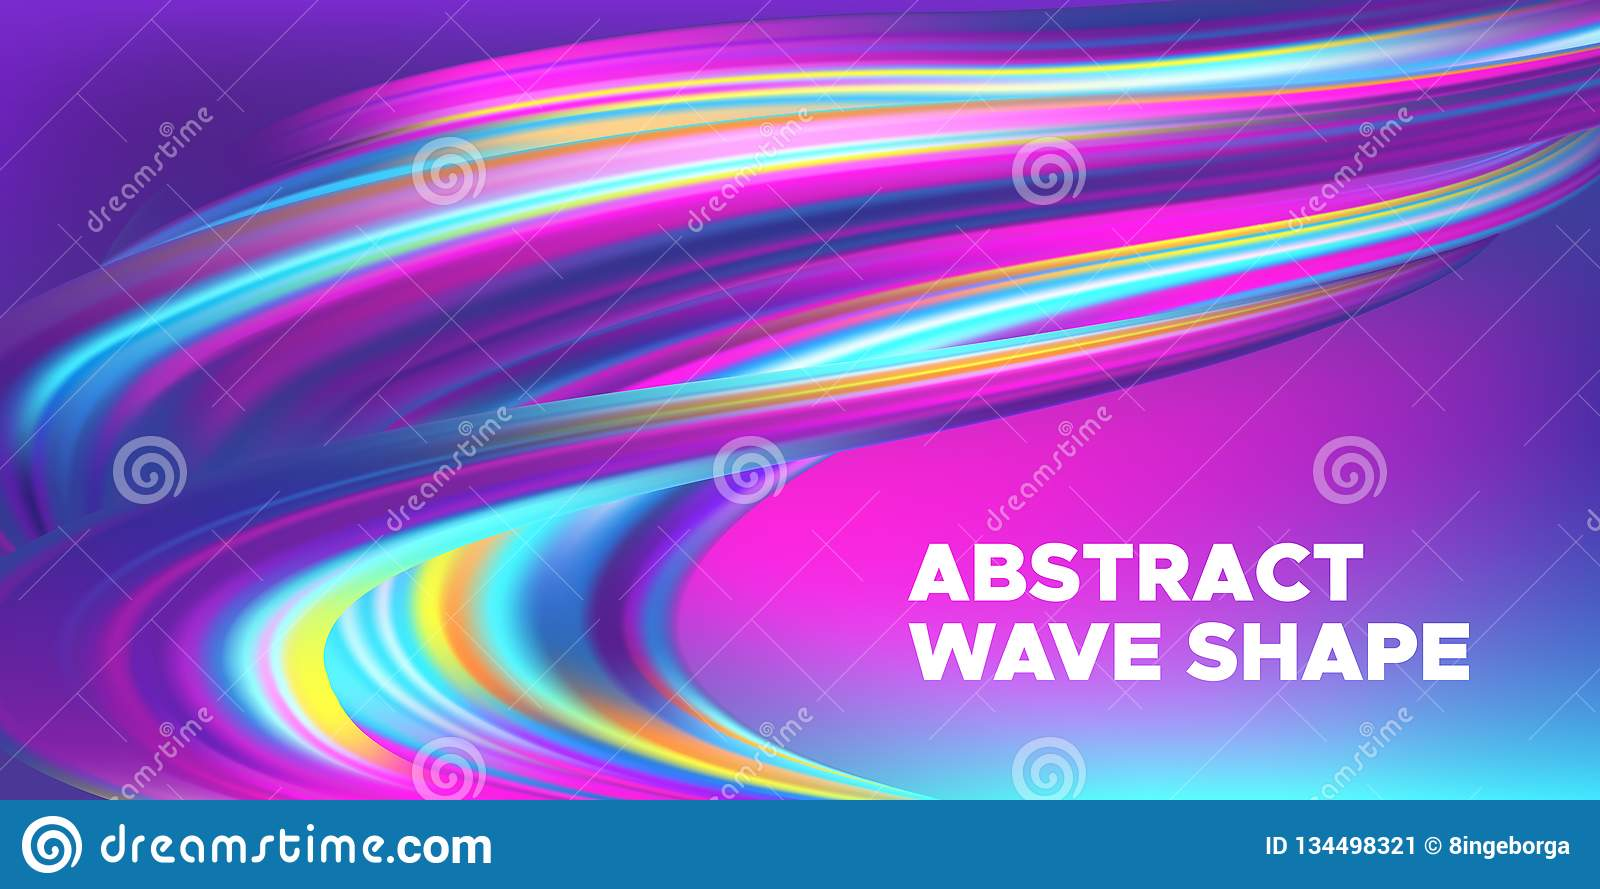 Colorful 3d Abstract Wave Banner.